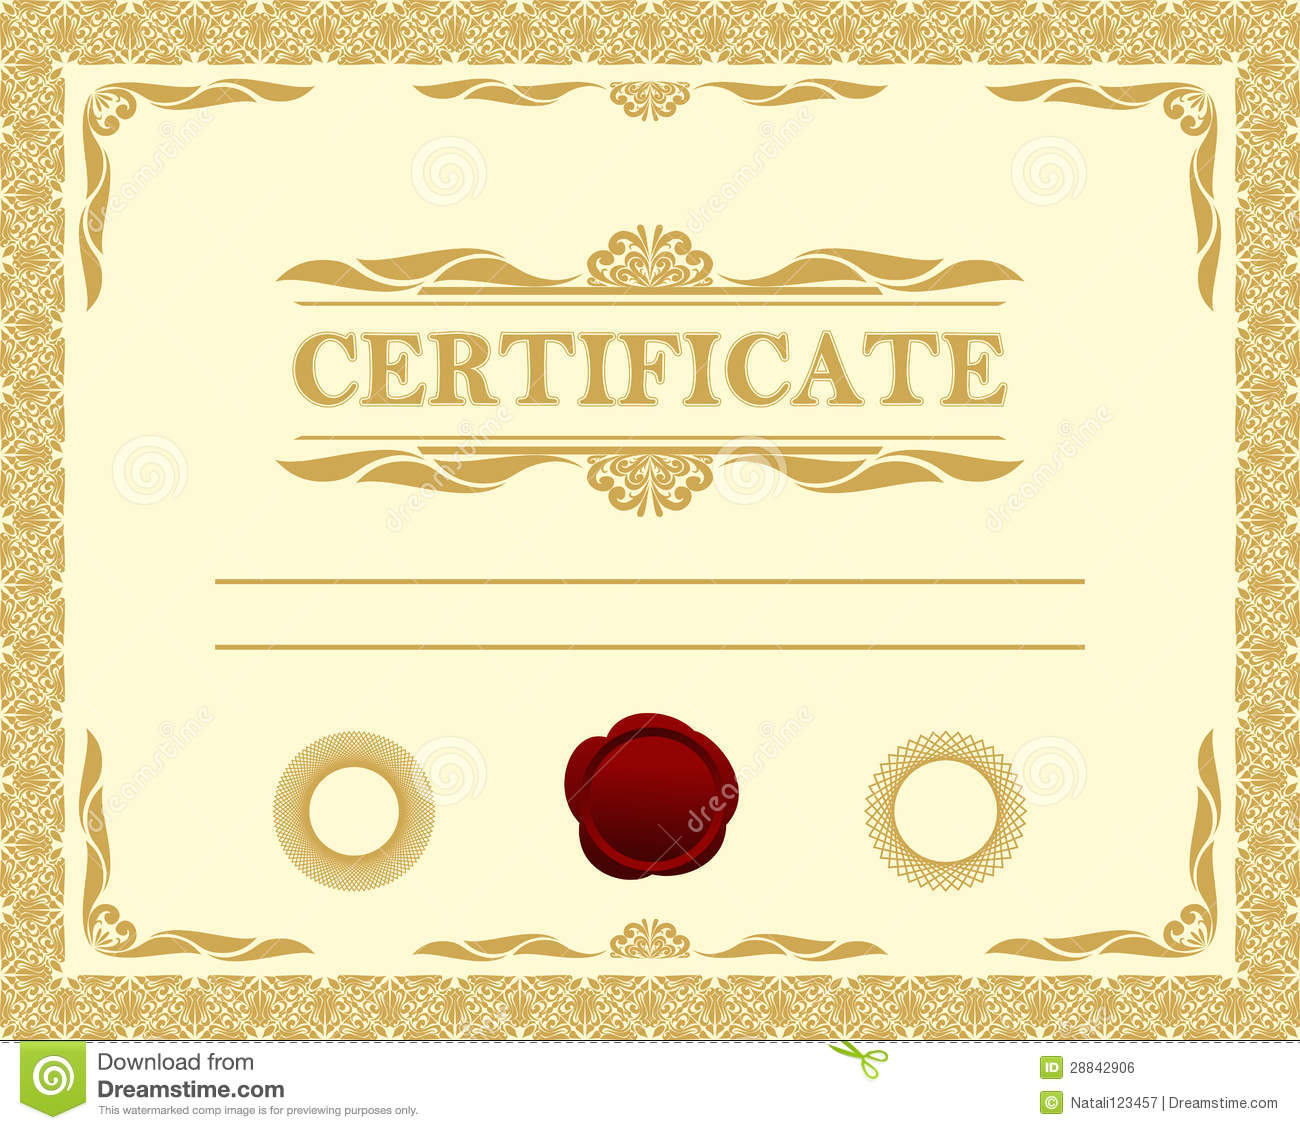 Certificate template. stock vector. Illustration of badge ...